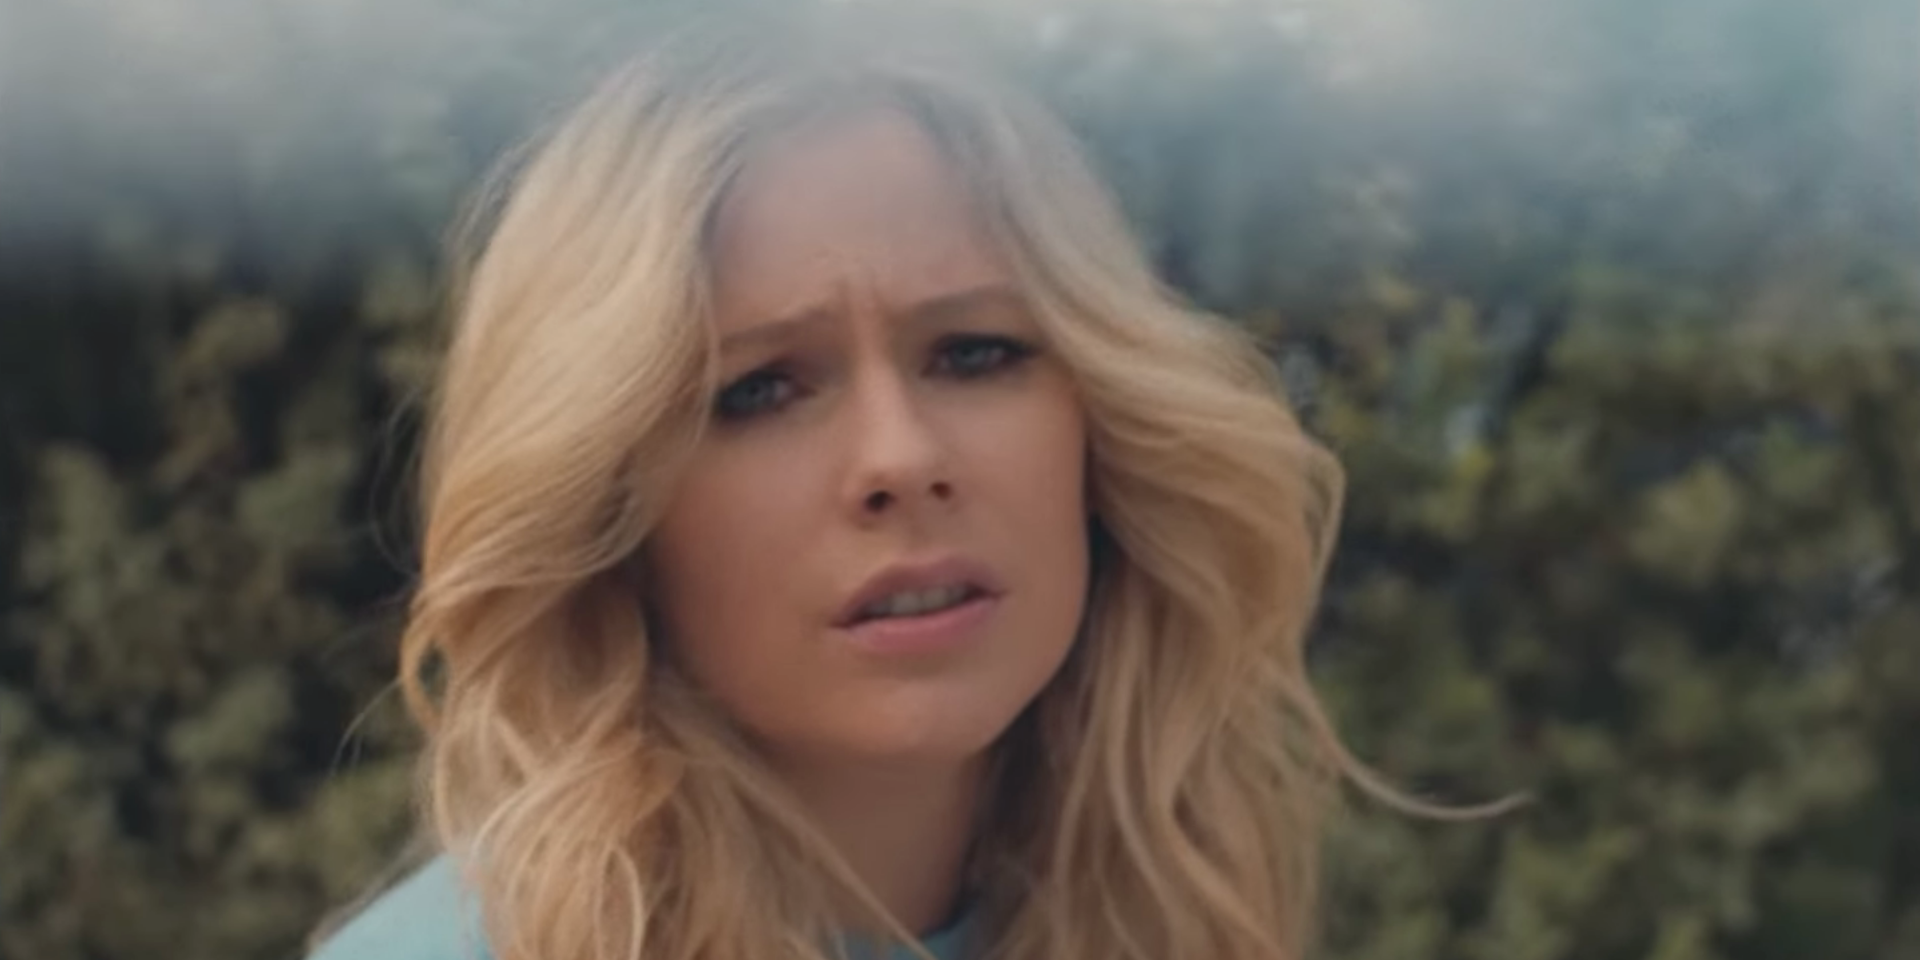 Avril Lavigne embraces her vulnerability in new music video 'Tell Me It's Over' — watch